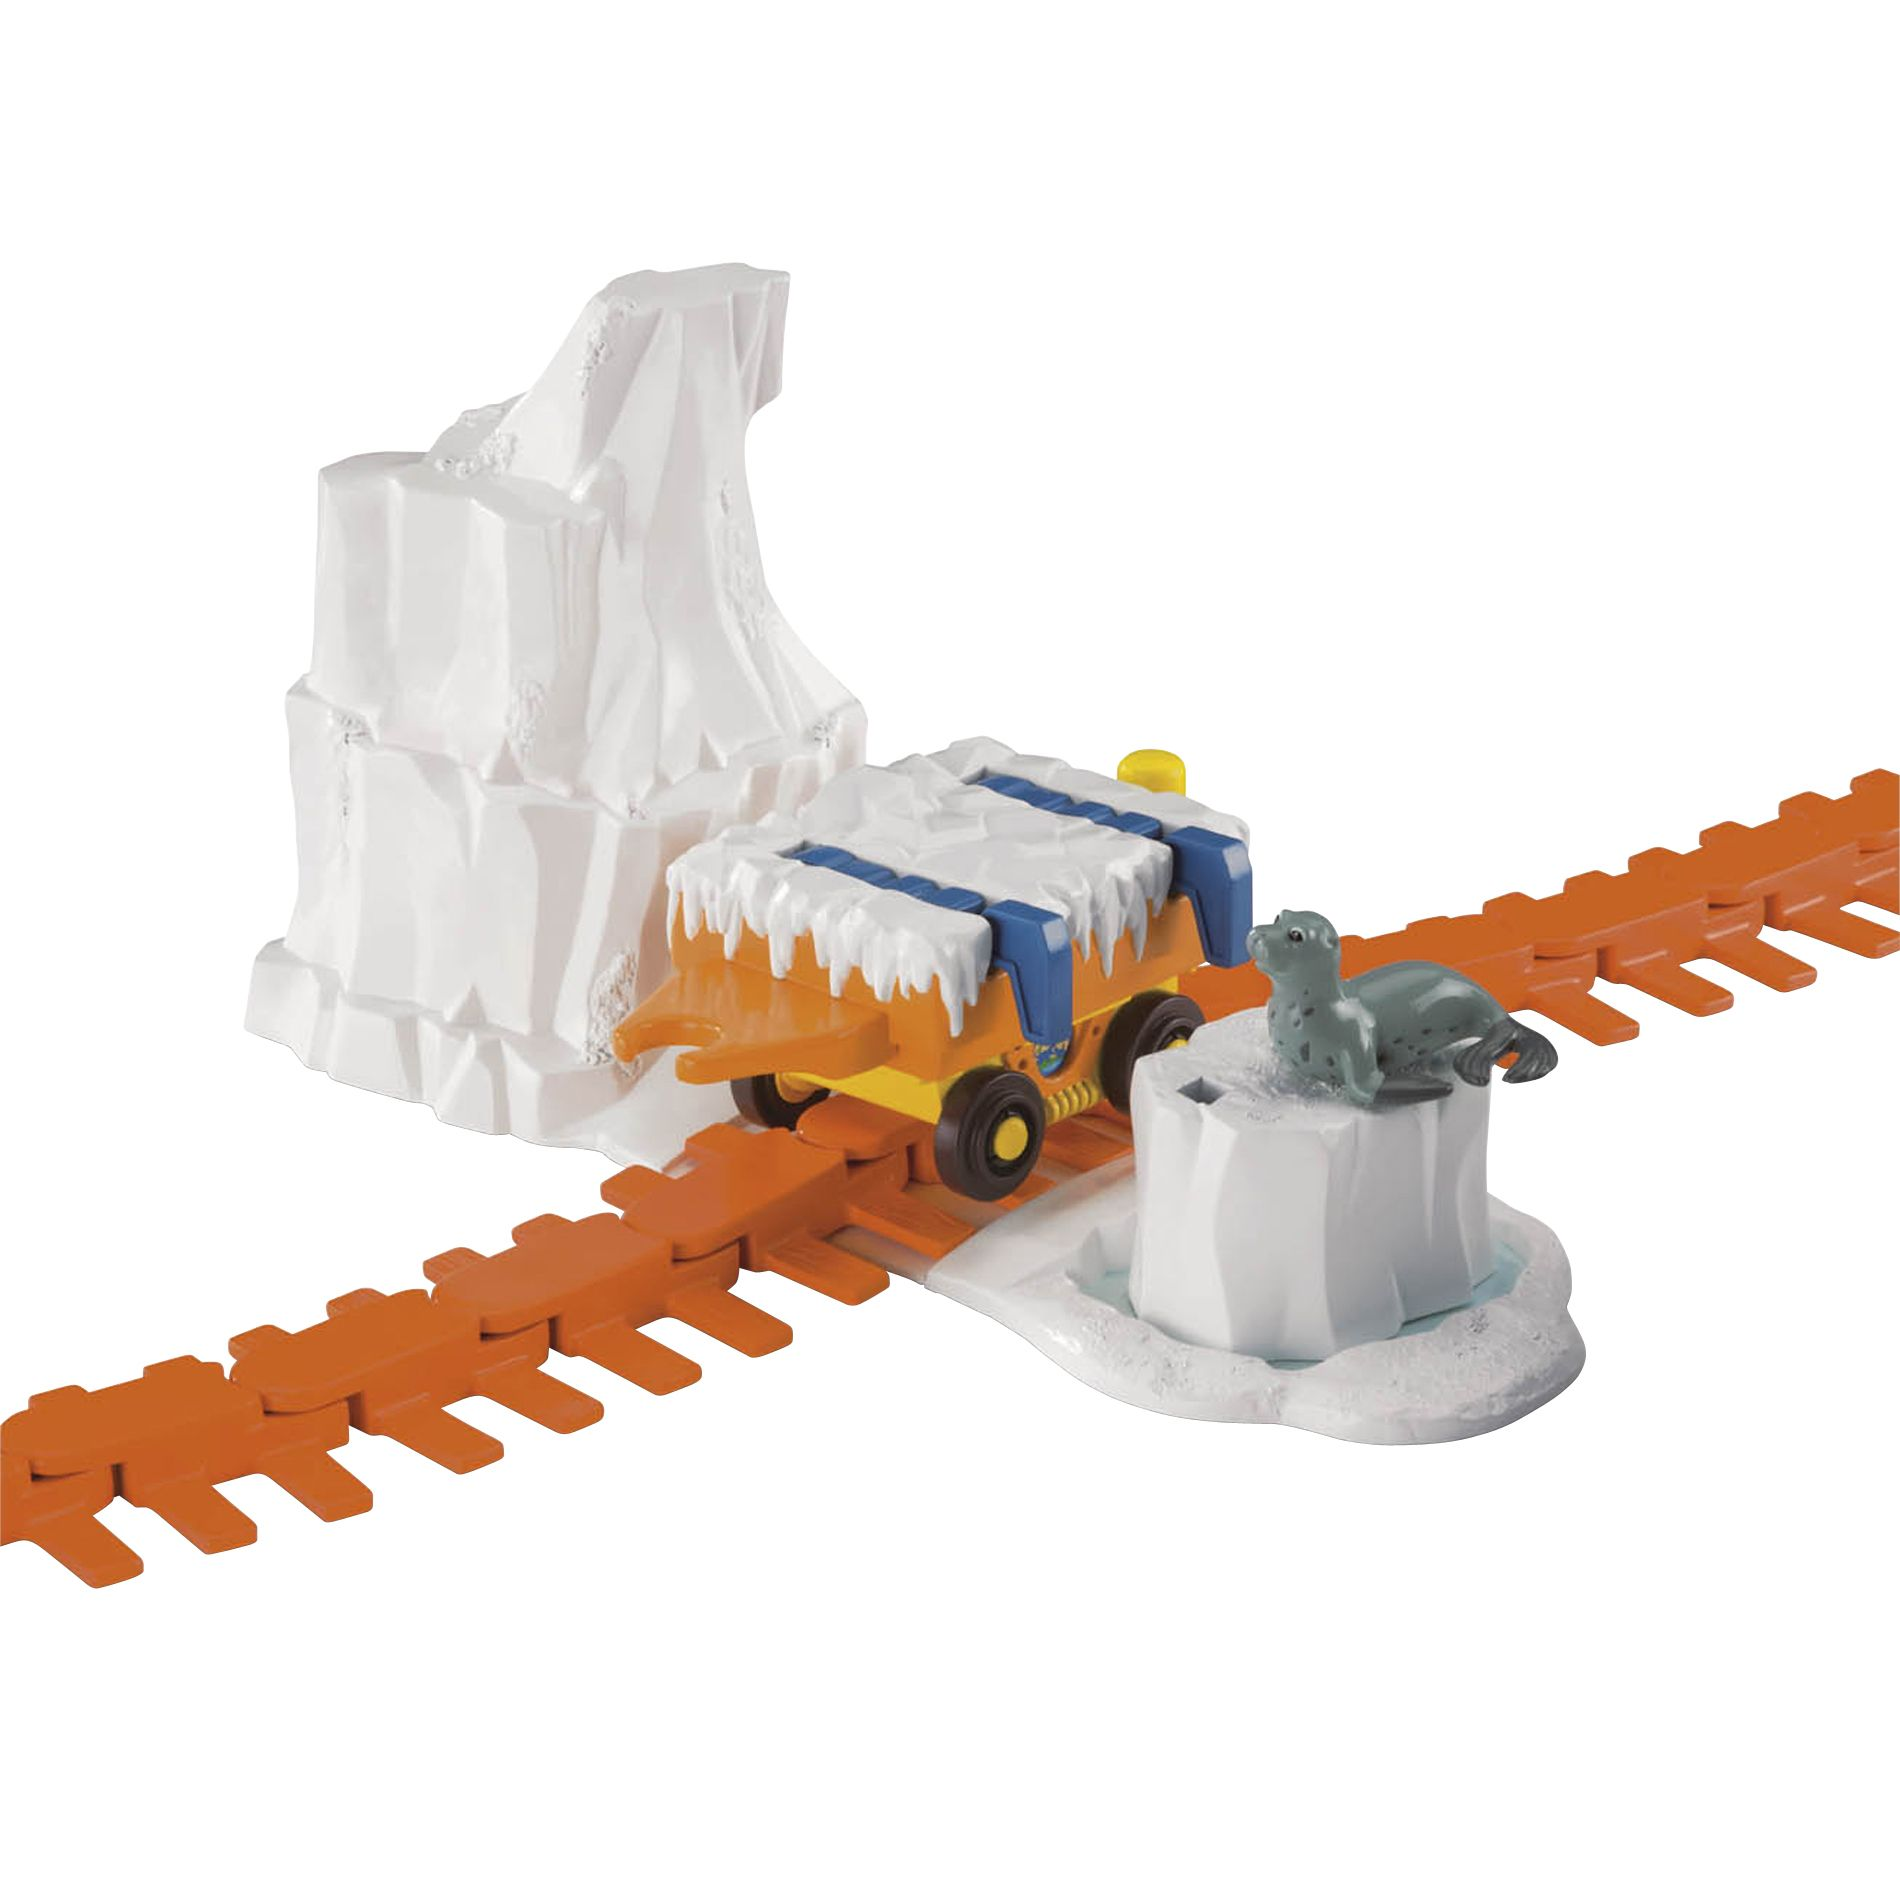 Fisher-Price Go Diego Go Animal Rescue Railway Location Pack - Rescue Arctic with Seal PartNumber: 05214297000P KsnValue: 05214297000 MfgPartNumber: M8819-b